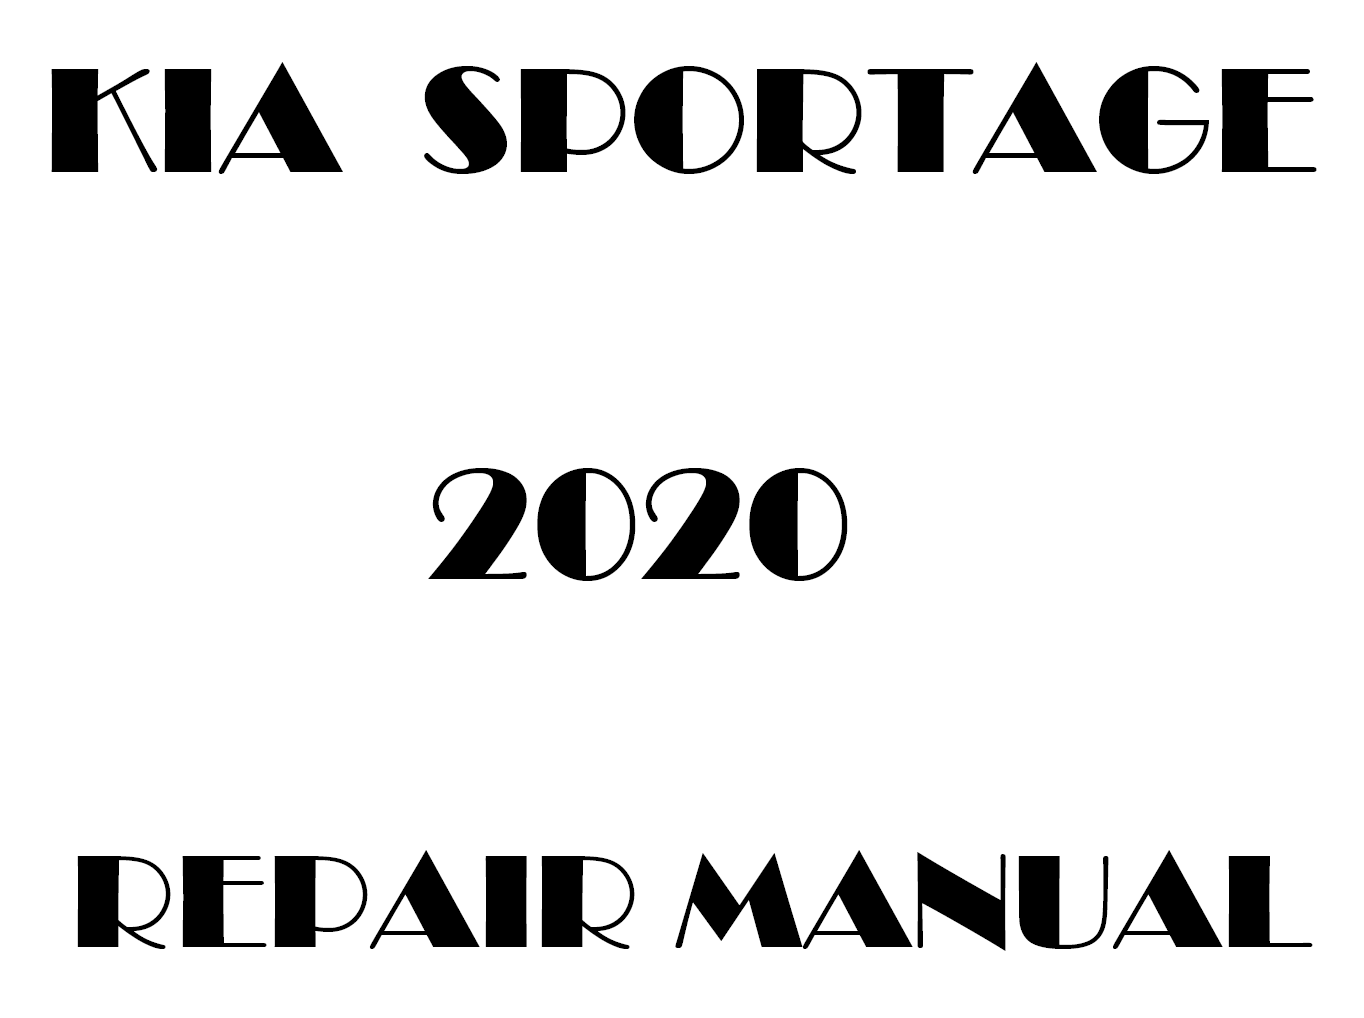 2020 Kia Sportage repair manual